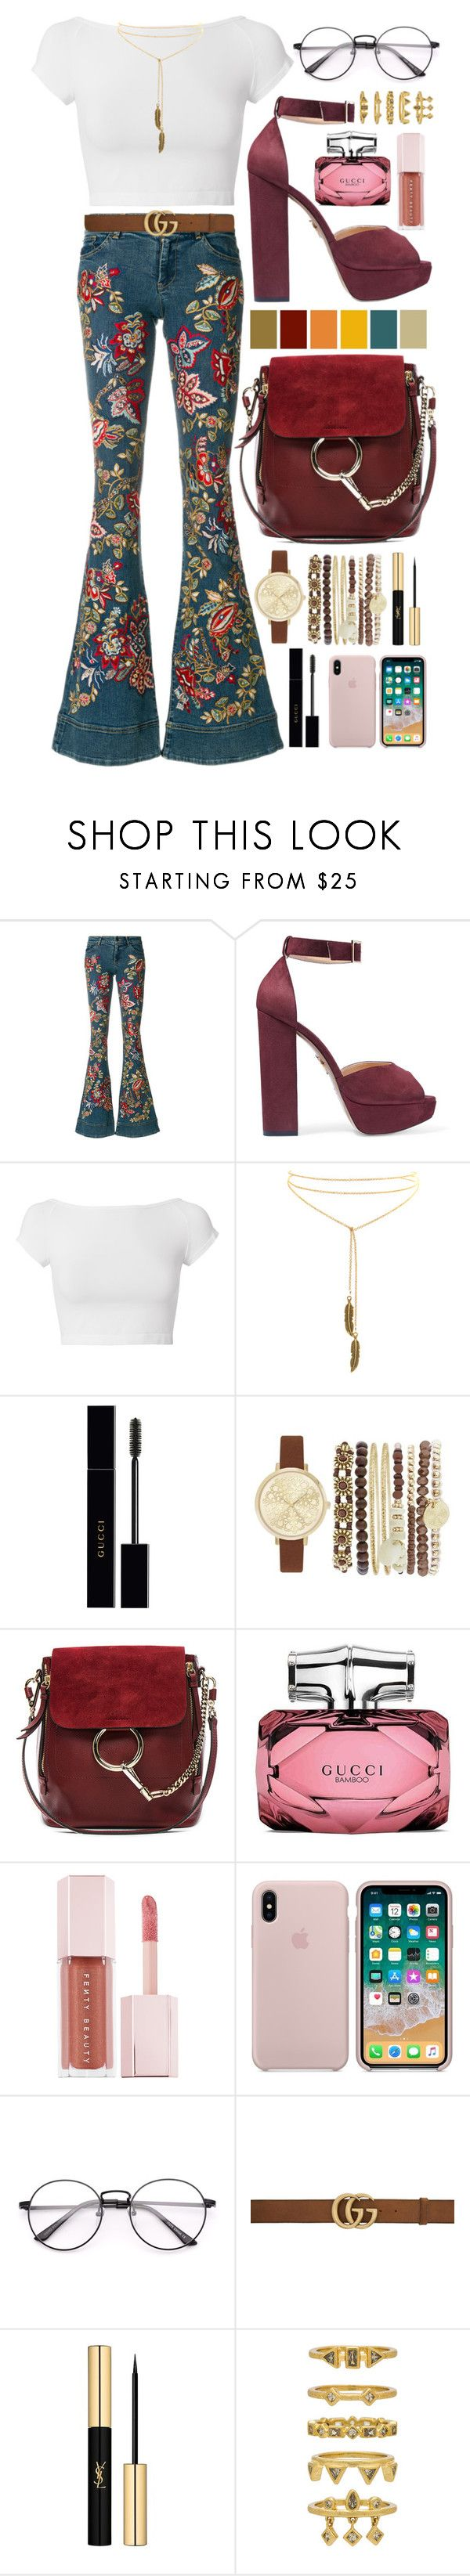 """""""lipps inc. - funkytown"""" by amylewin ❤ liked on Polyvore featuring Alice + Olivia, Charlotte Olympia, Helmut Lang, Gucci, Jessica Carlyle, Chloé, Puma, Yves Saint Laurent, Luv Aj and boho"""